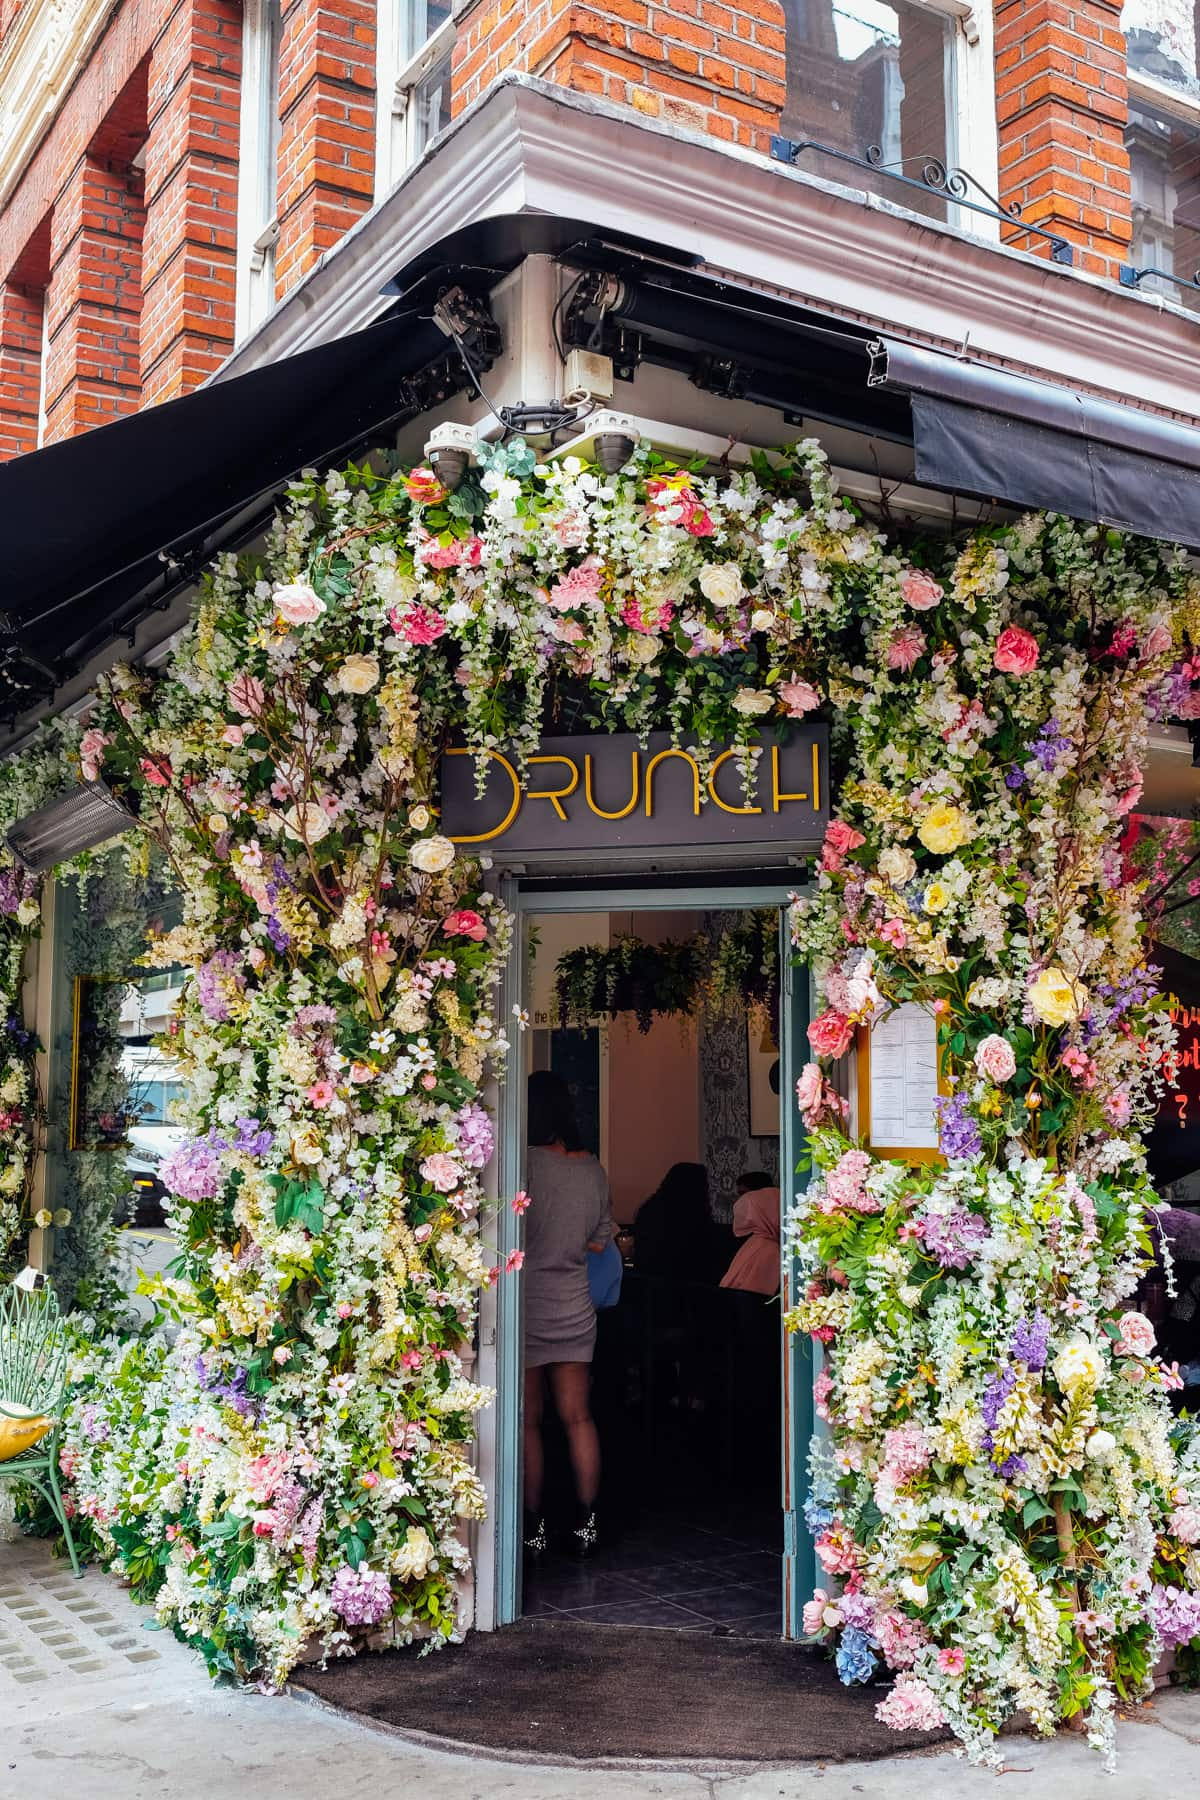 Gorgeous Drunch entrance in London! Photos of Our British Isles Cruise with Family! | Part 1 # travel #familytravel #cruise #decor #design #britishisles